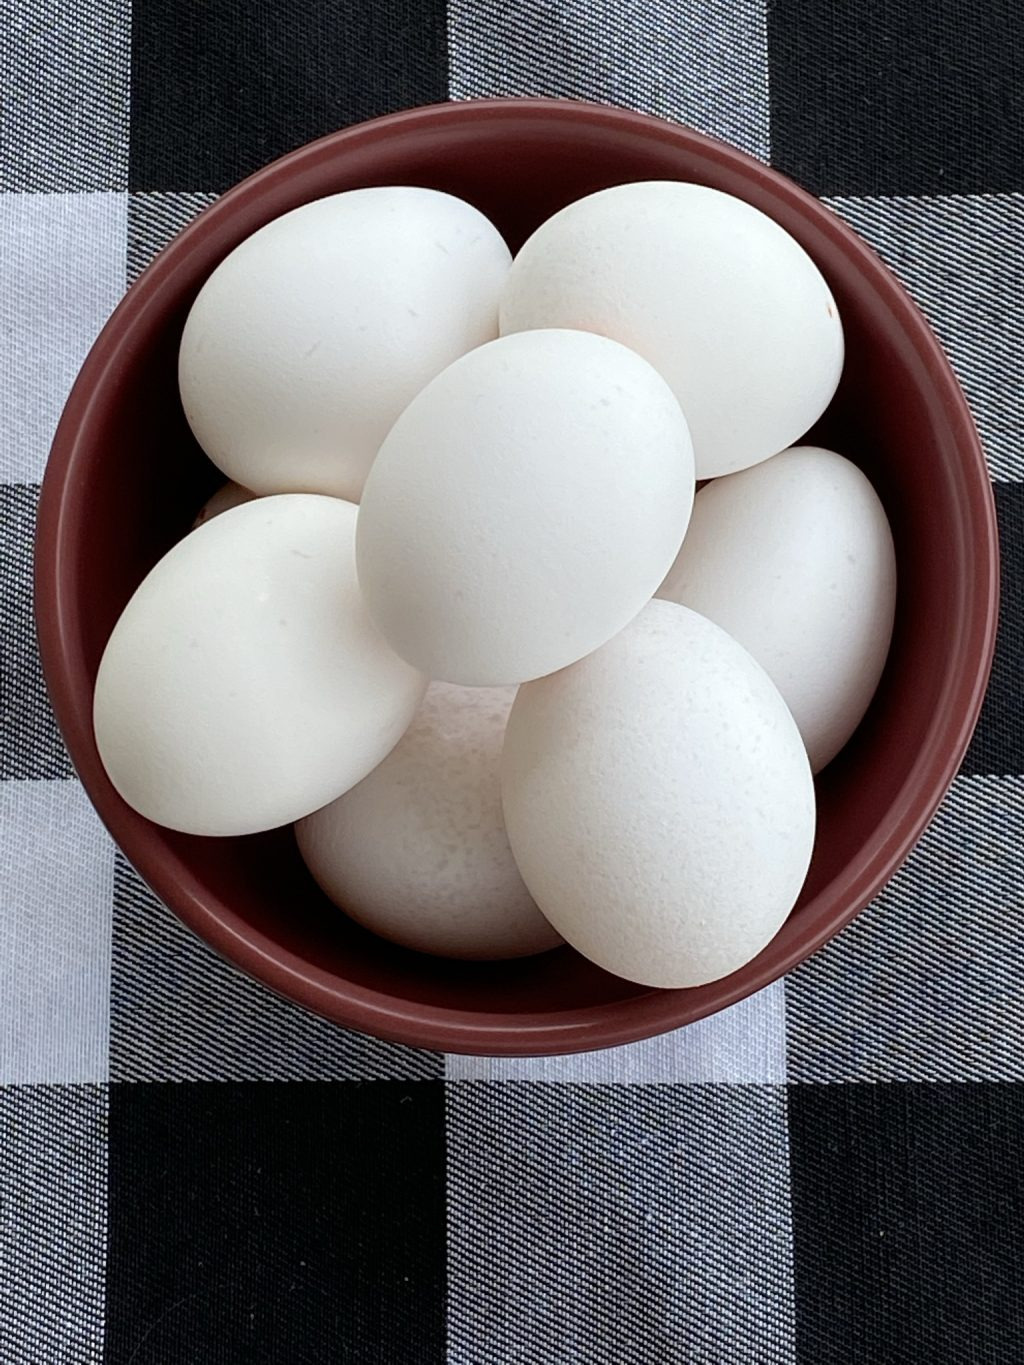 bowl of eggs on a placemat